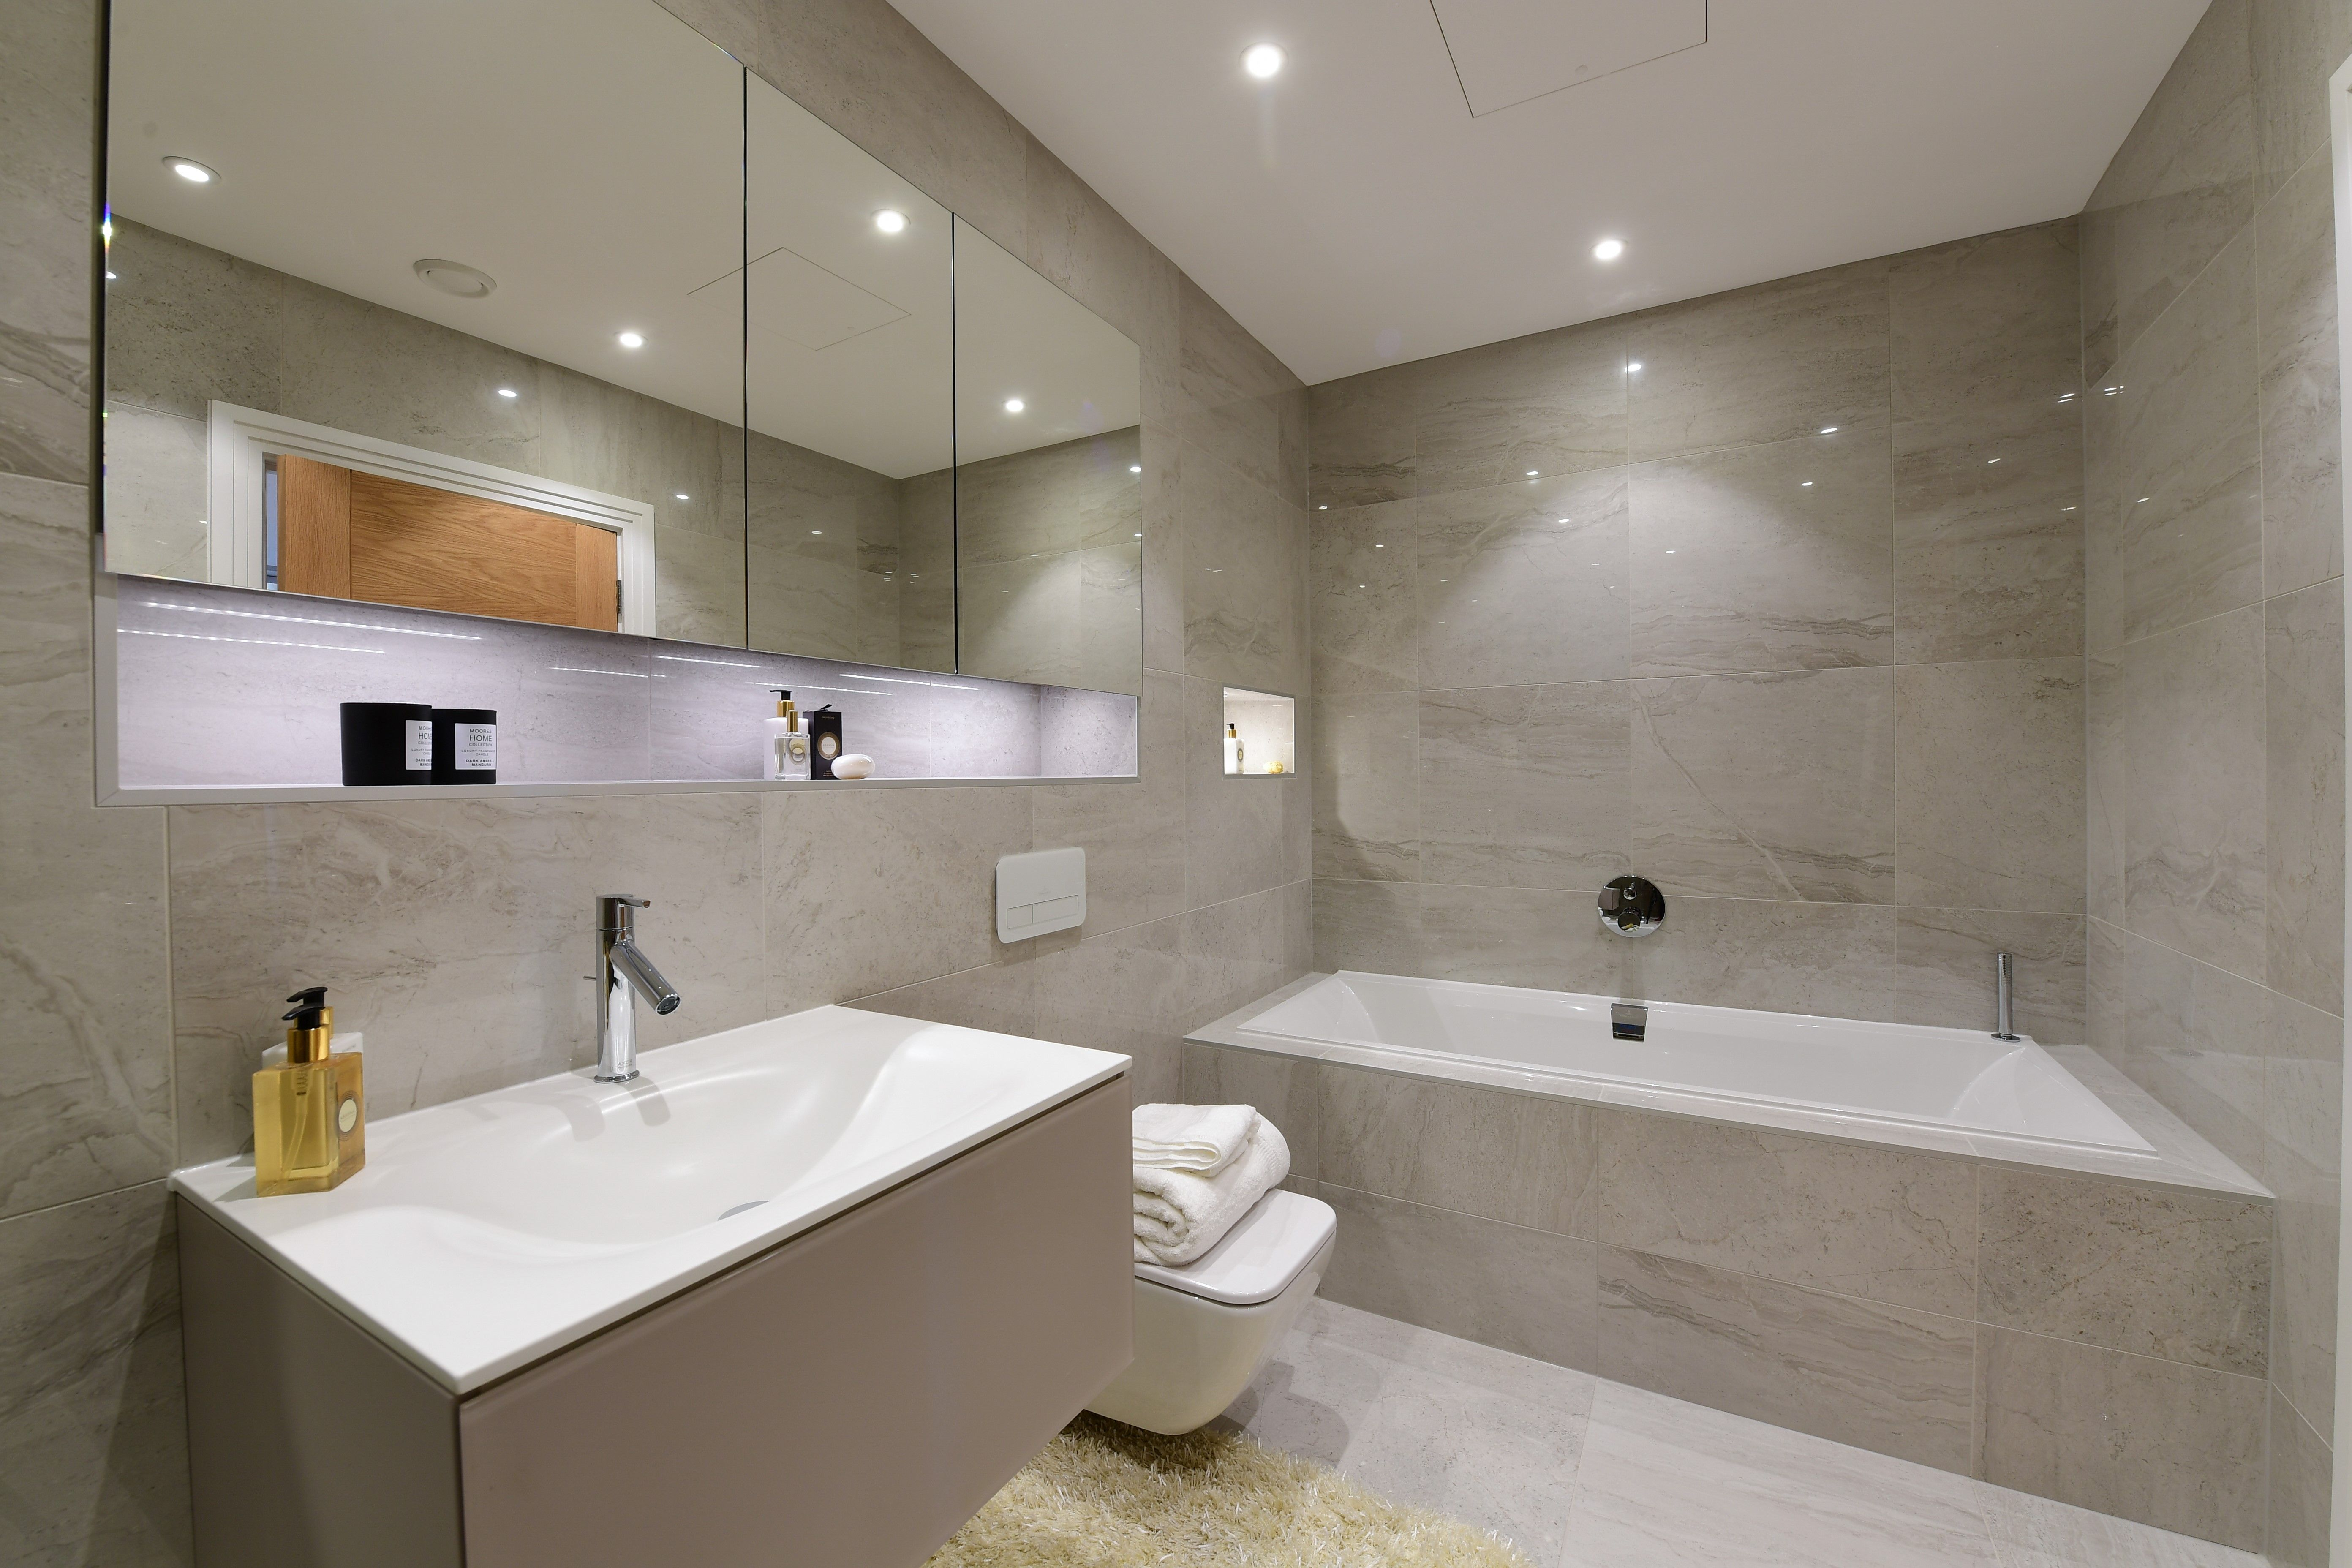 Silver Dreams Splash Across Walls And Floors Of This Luxurious